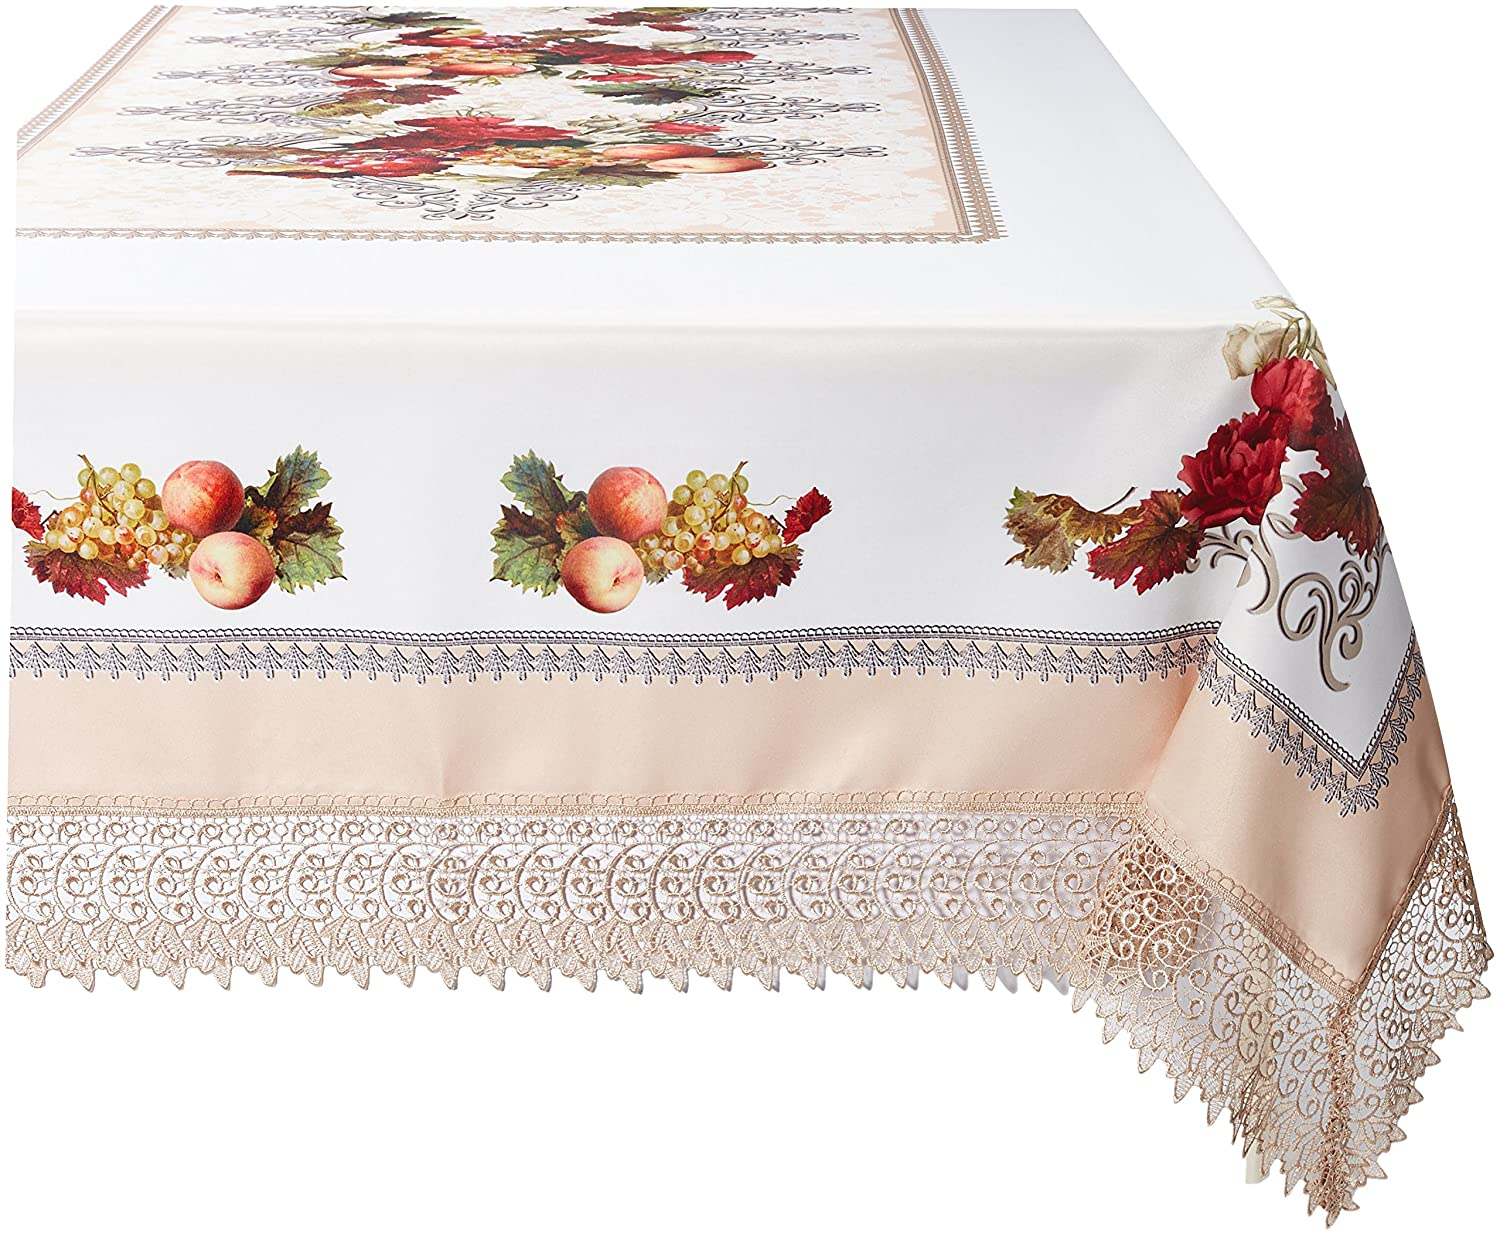 Ivory 52  x 70  purple Linen Decorative Printed Fruttela Tablecloth With Lace Trimming, Burgundy, 70  x 120